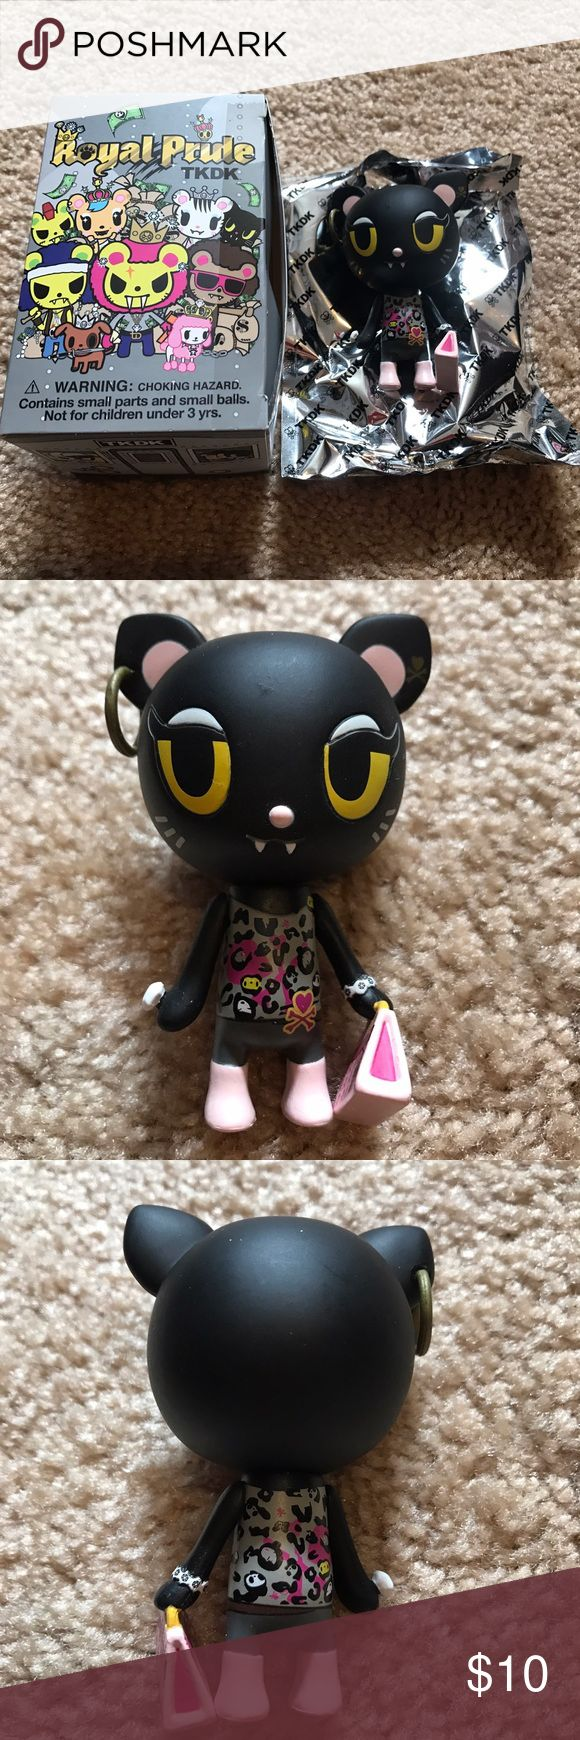 Tokidoki TKDK Royal Pride Maya Blind Box Figure Brand new figure, only opened to check character, still comes with plastic wrap and original box! tokidoki Other